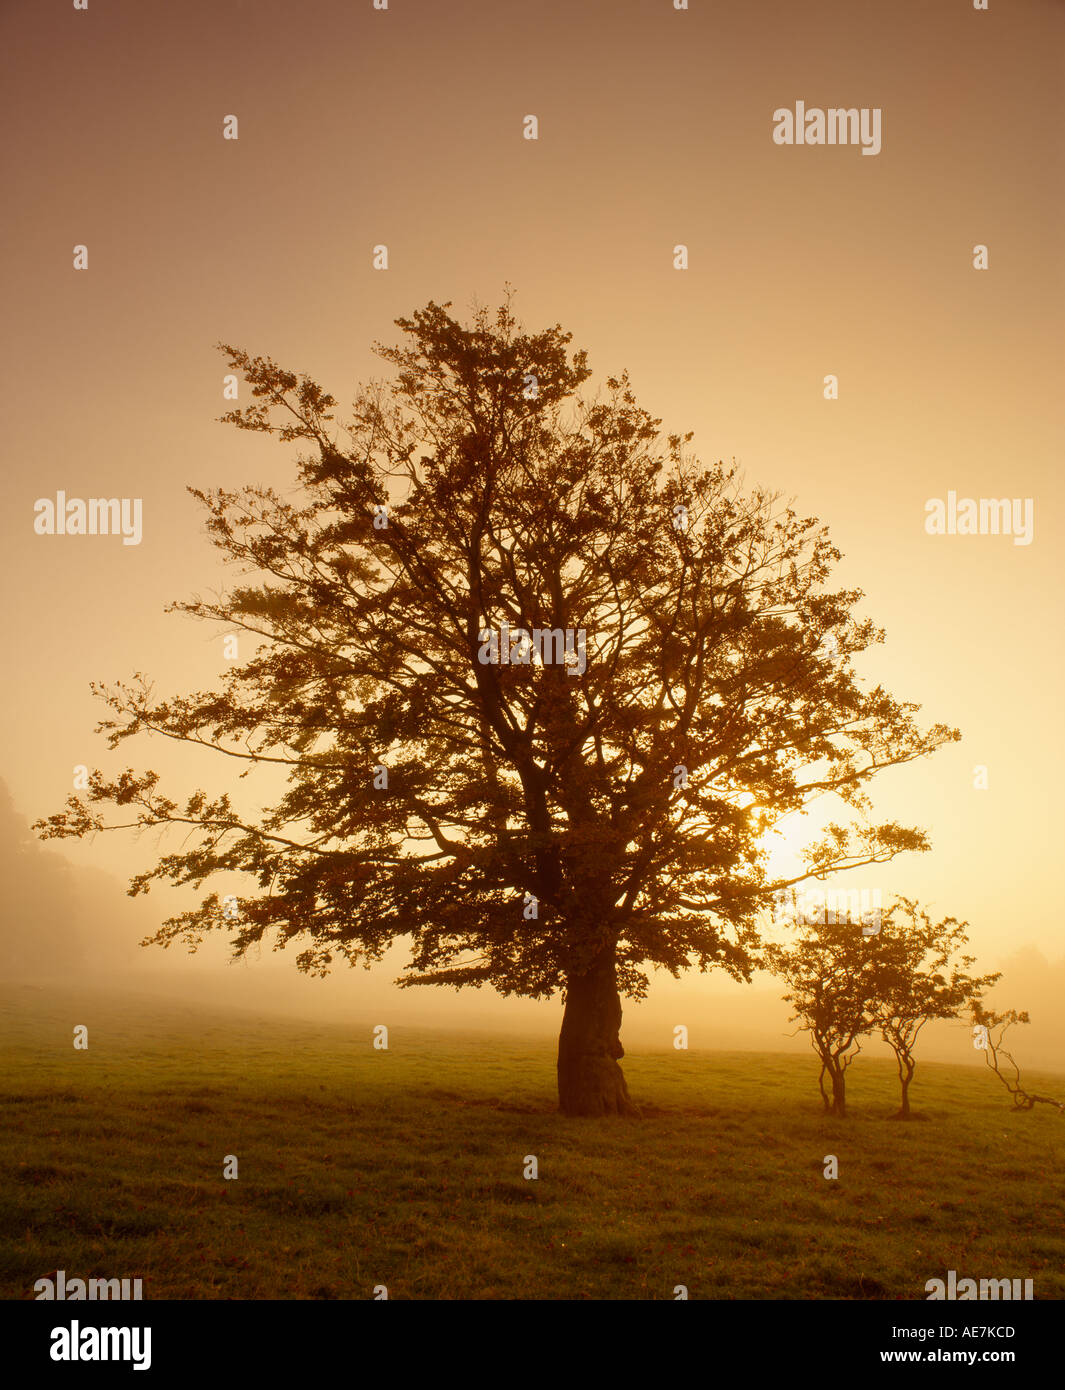 Tree silhouetted in mist against rising sun Drymen Stirling Scotland - Stock Image